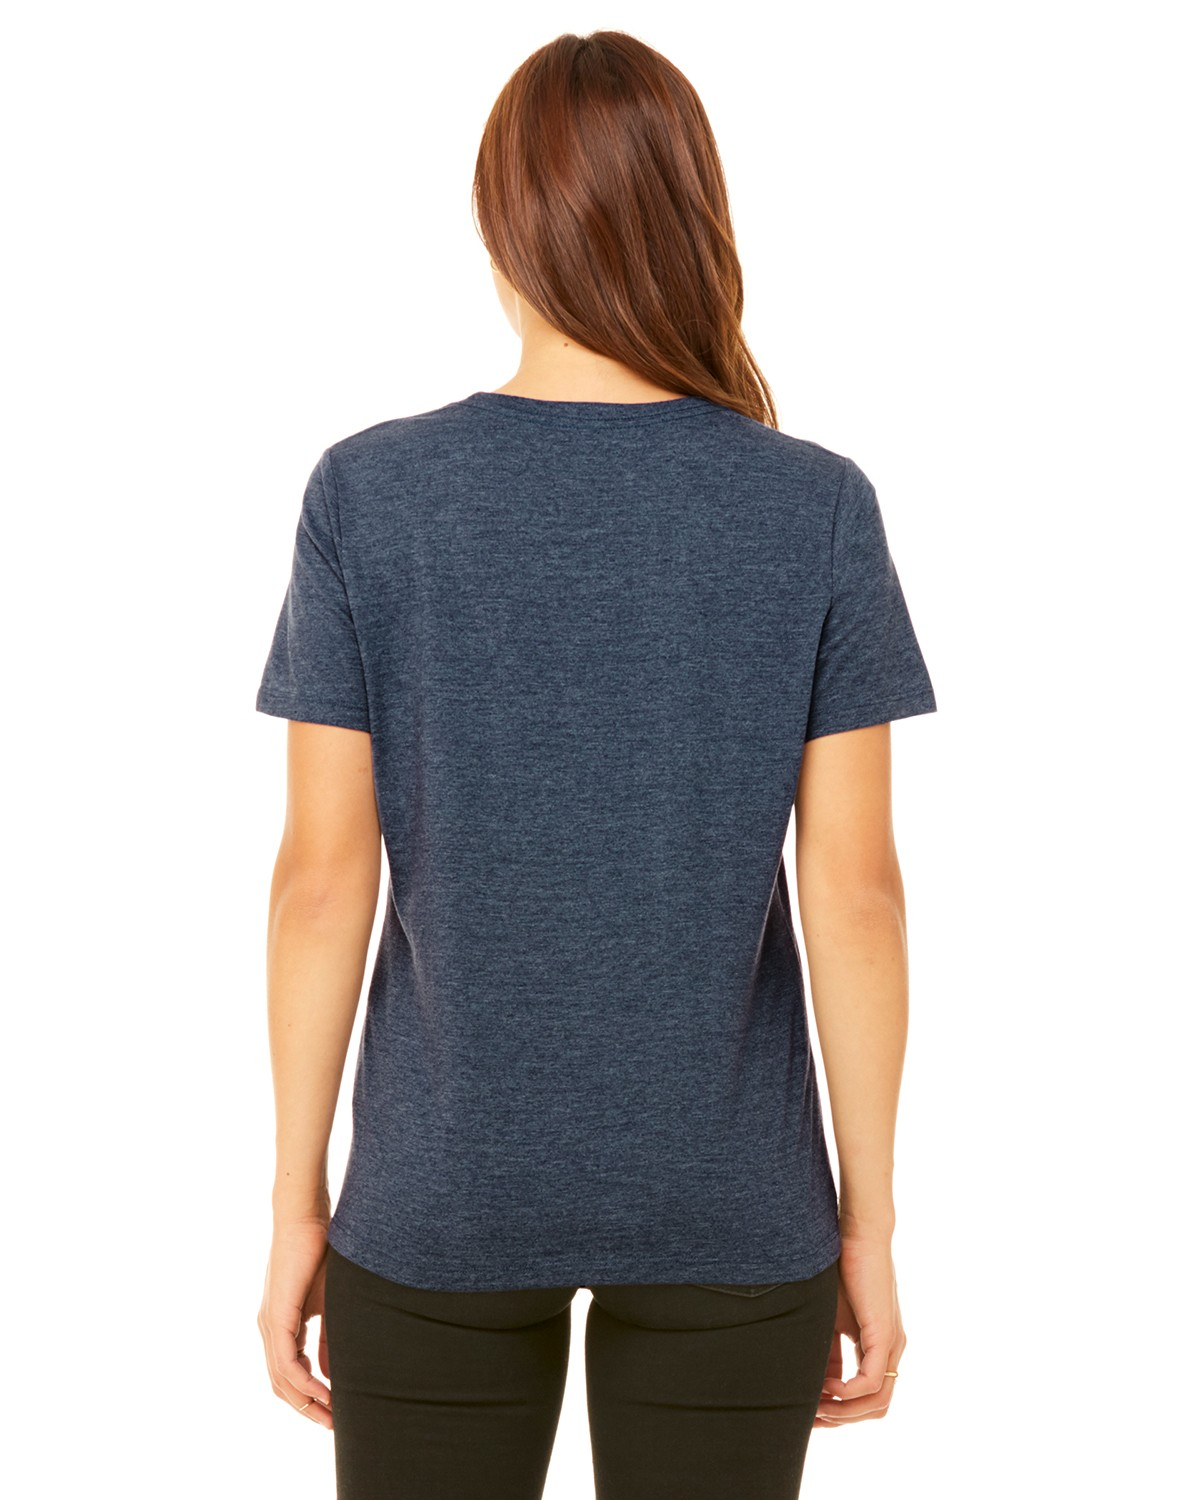 B6400 Bella + Canvas HEATHER NAVY